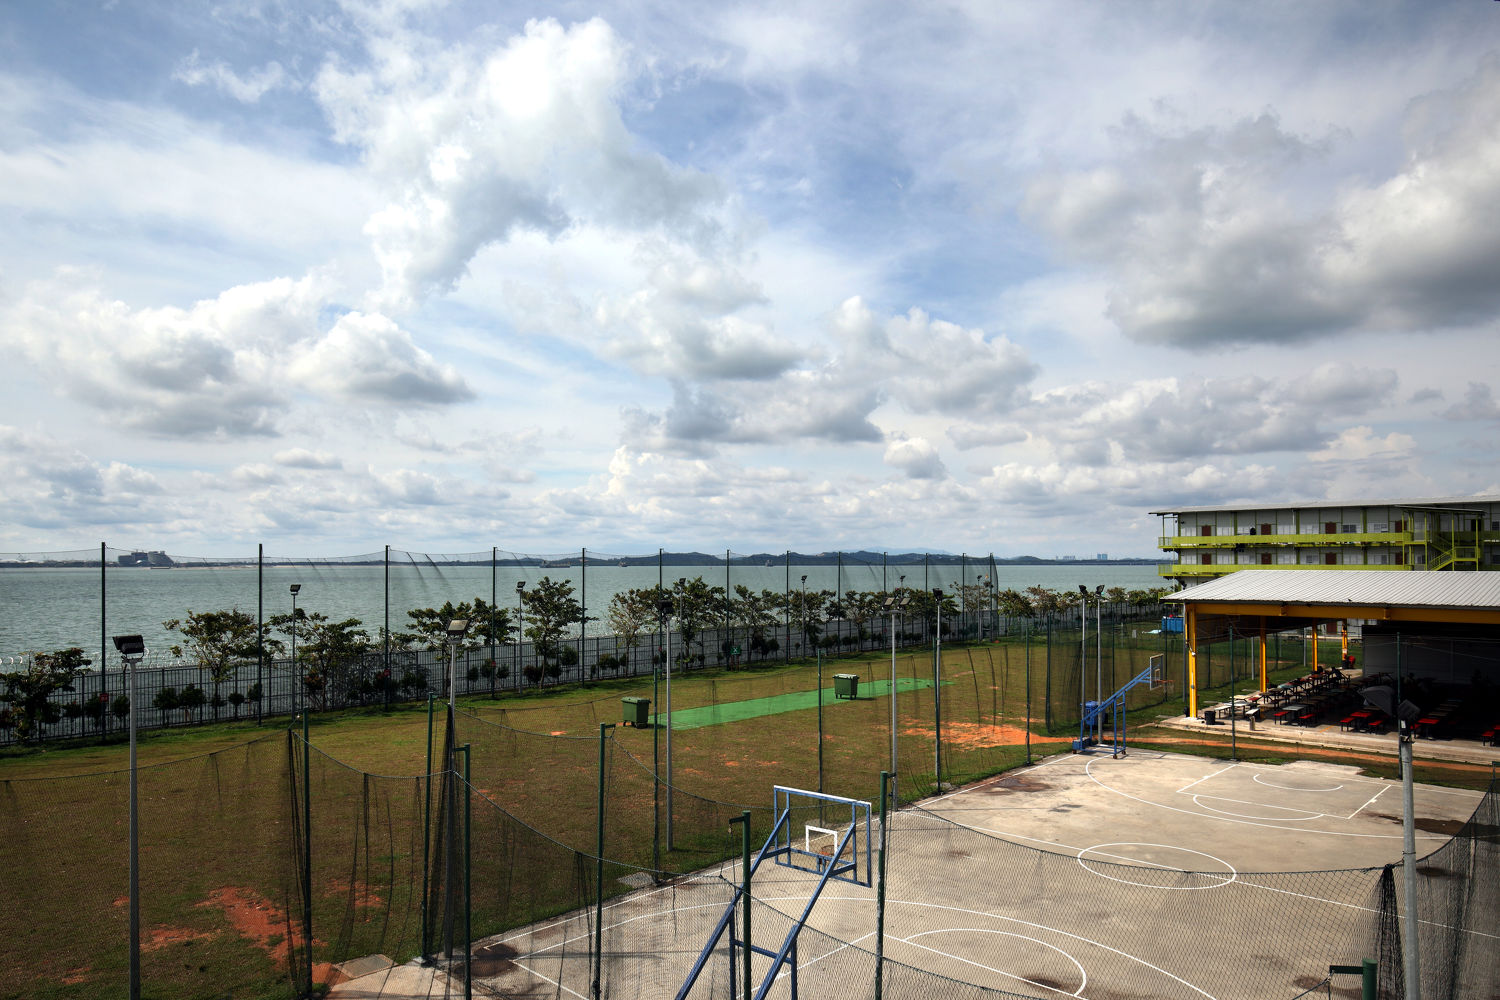 Tuas View has minimarts, dedicated cooking areas, central laundry and recreational facilities such as outdoor games courts and a gym - EDGEPROP SINGAPORE